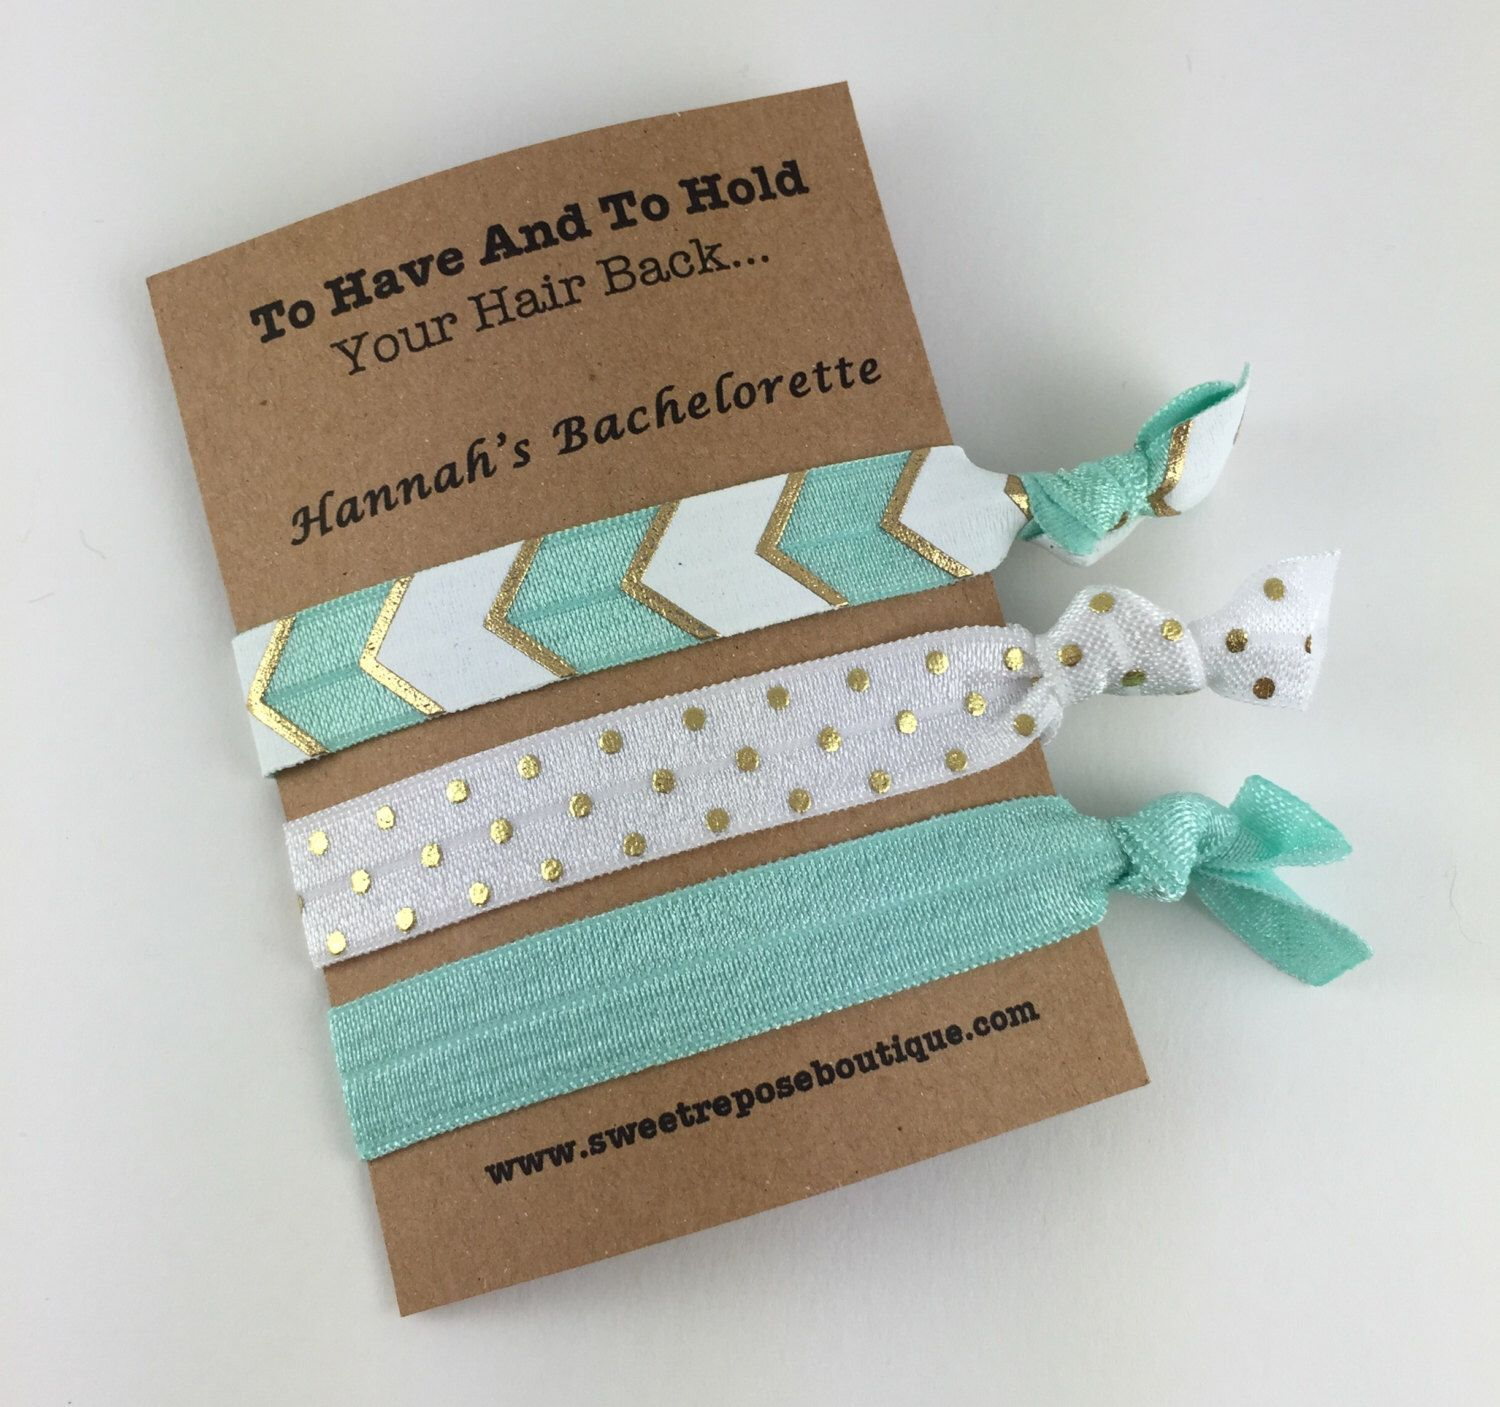 Bachelorette party ideas, personalized favors, bachelorette party, bachelorette party favors, party favors, hair tie favors, FOE hair ties by SweetReposeBoutique on Etsy https://www.etsy.com/listing/226944854/bachelorette-party-ideas-personalized